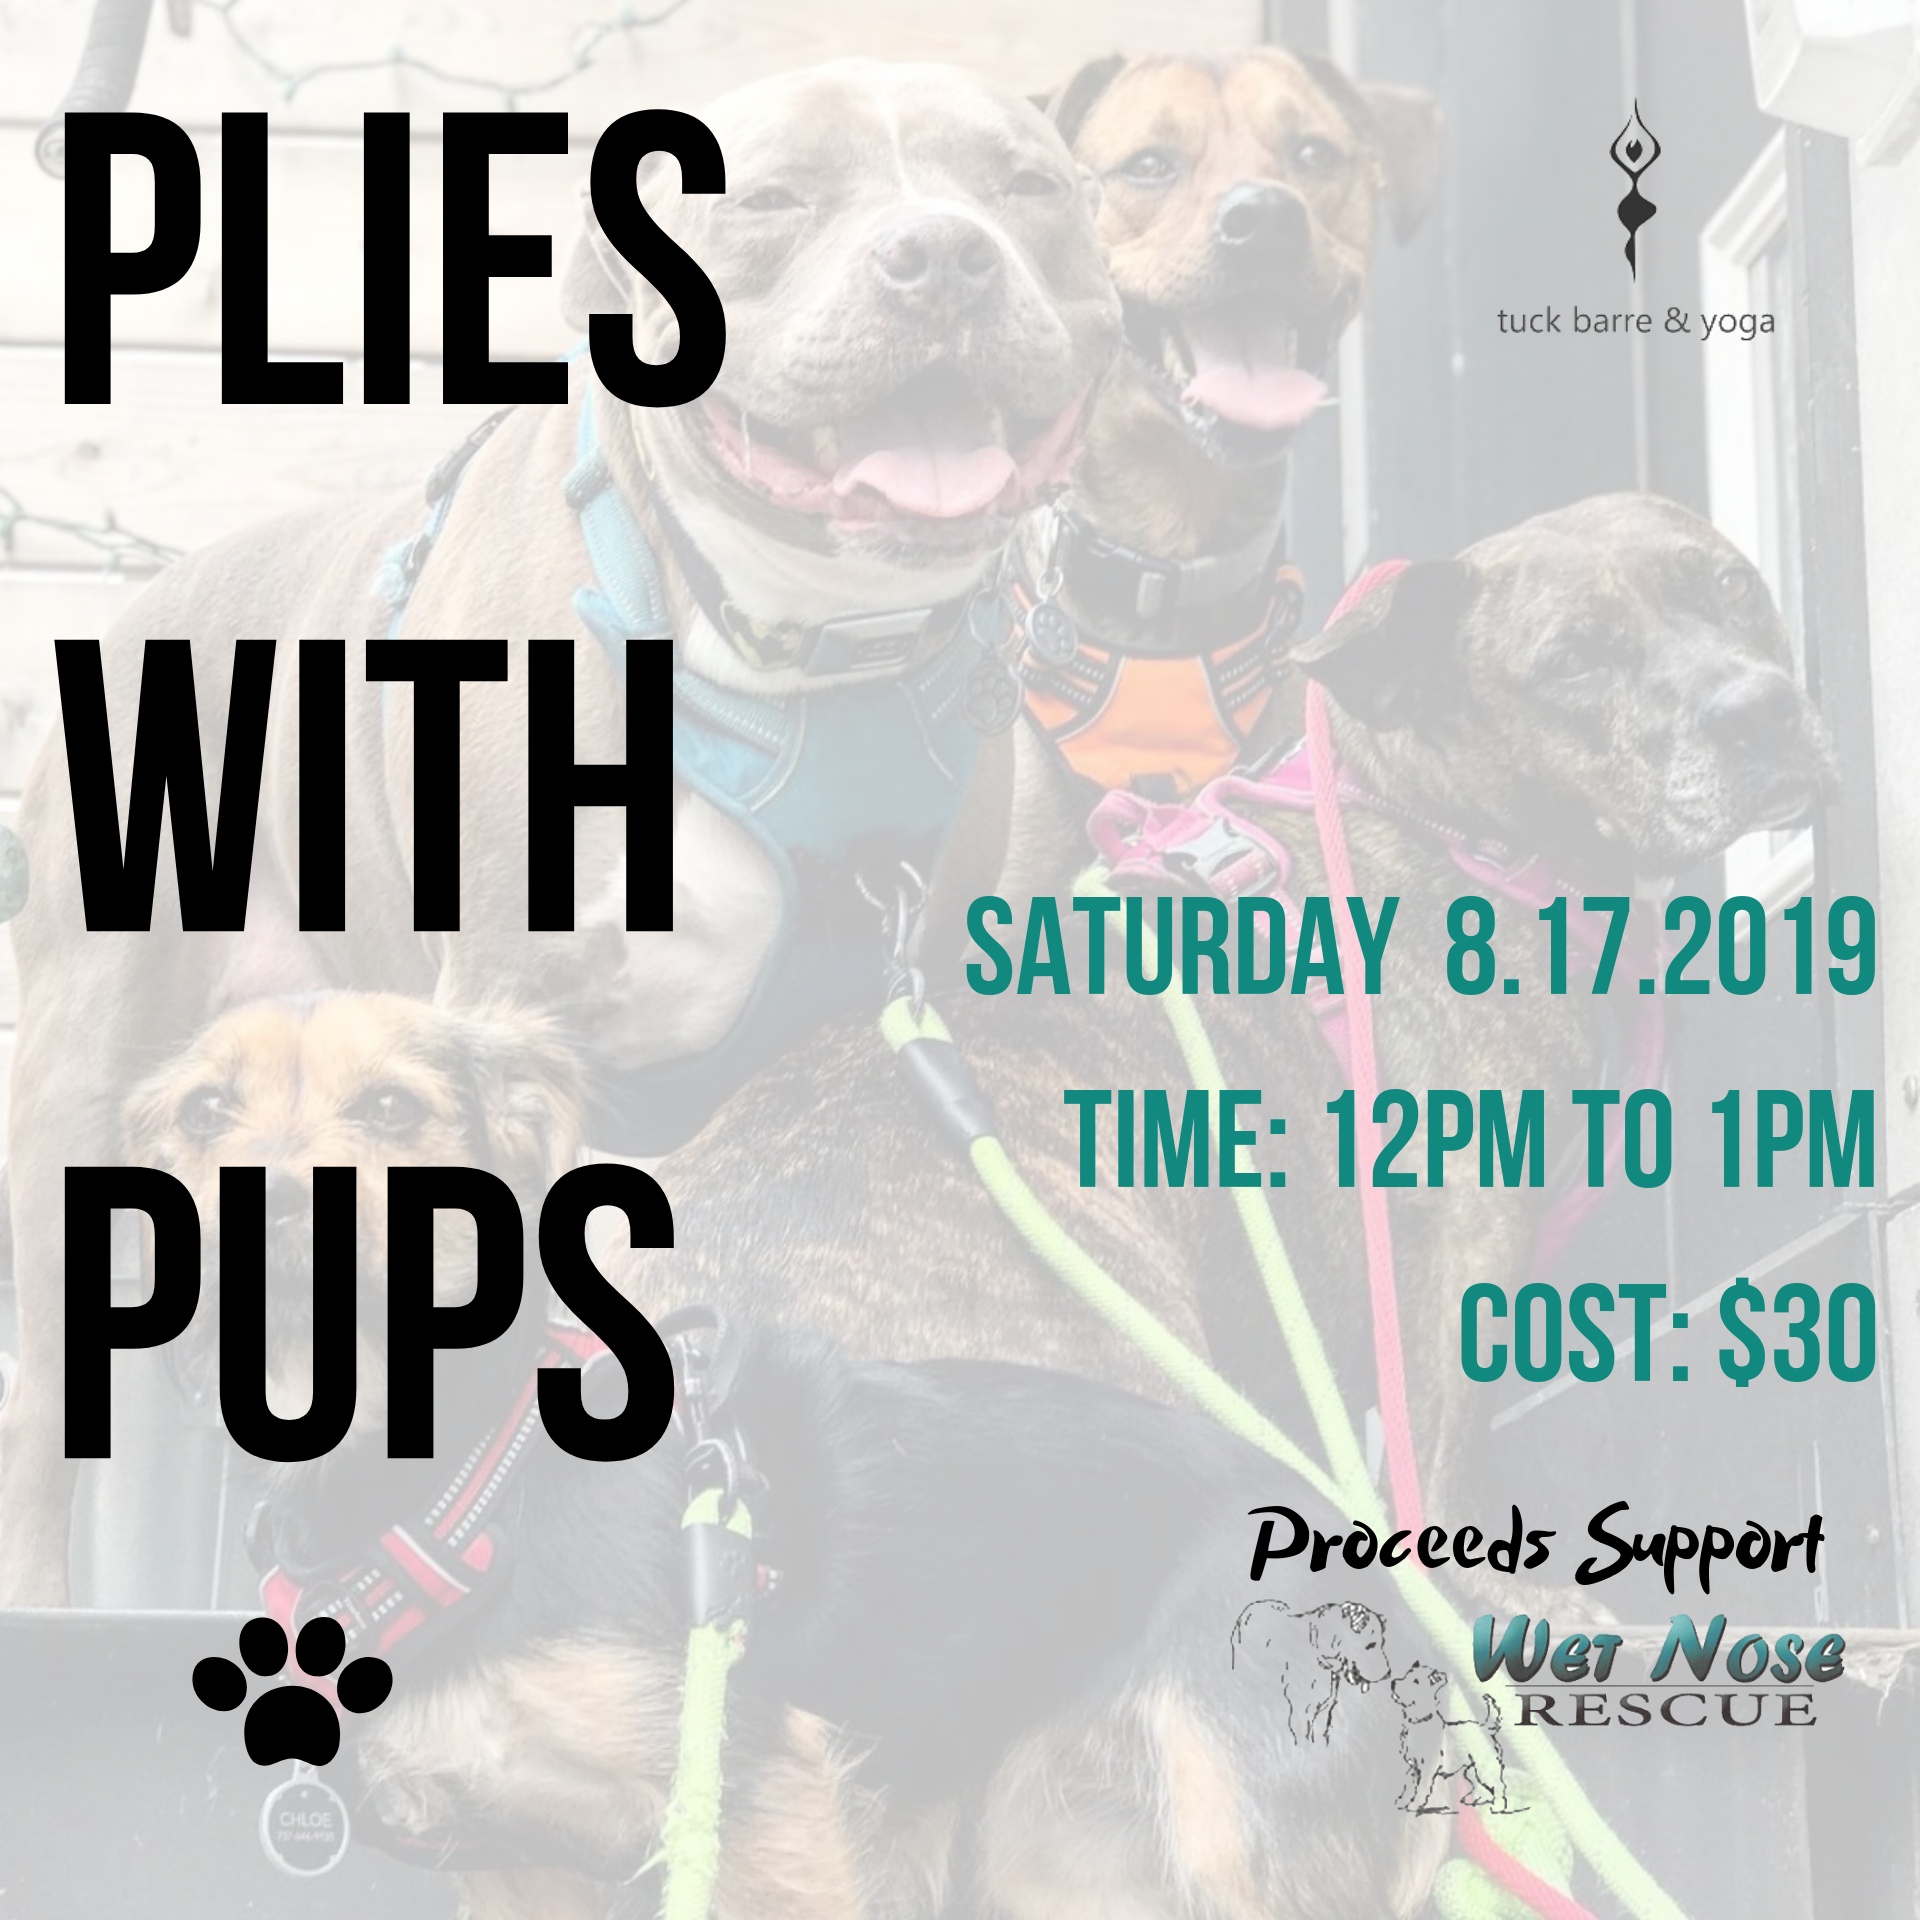 Plies with Pups @ Tuck, Barre and Yoga